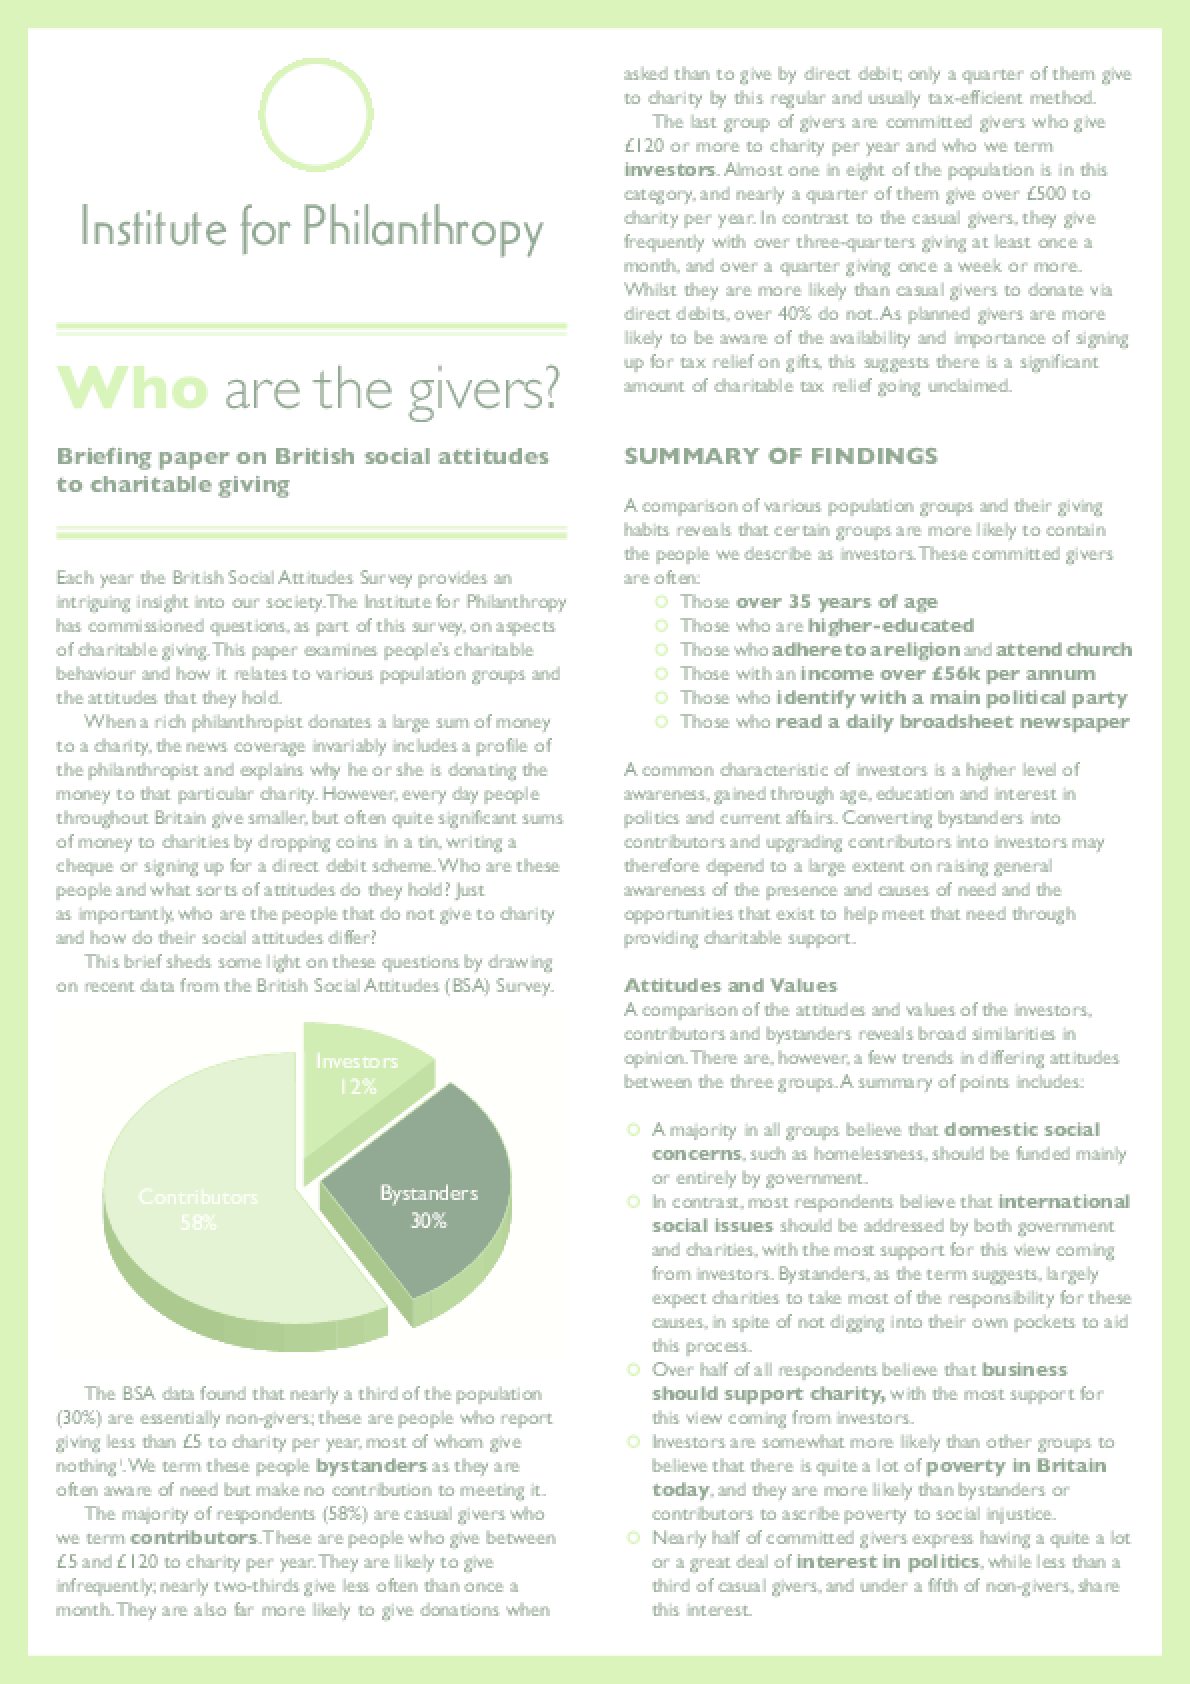 Who Are the Givers? Briefing Paper on British Social Attitudes to Charitable Giving